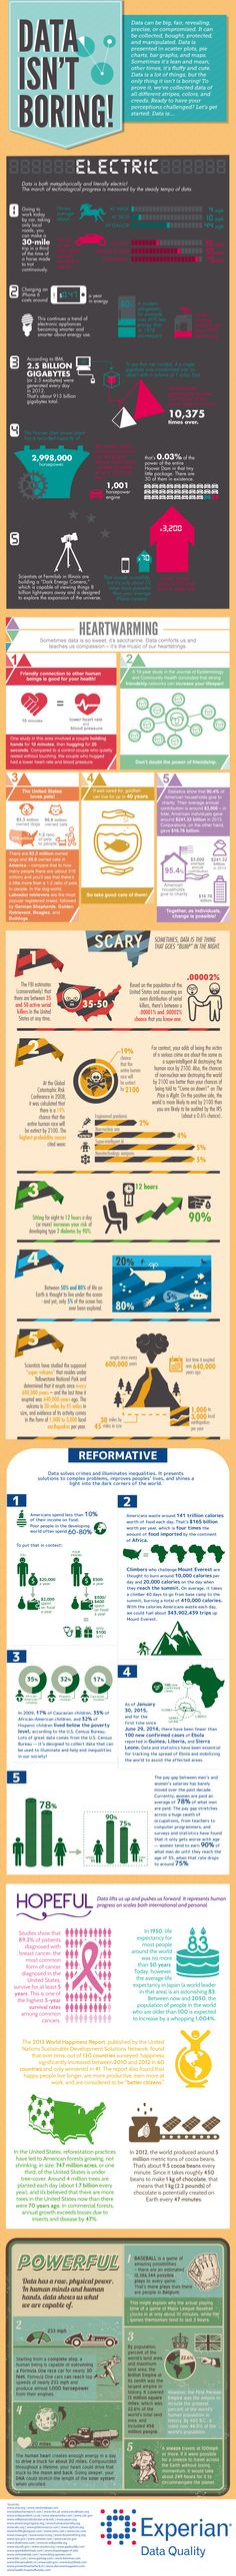 View this infographic to learn why data is anything but dull.